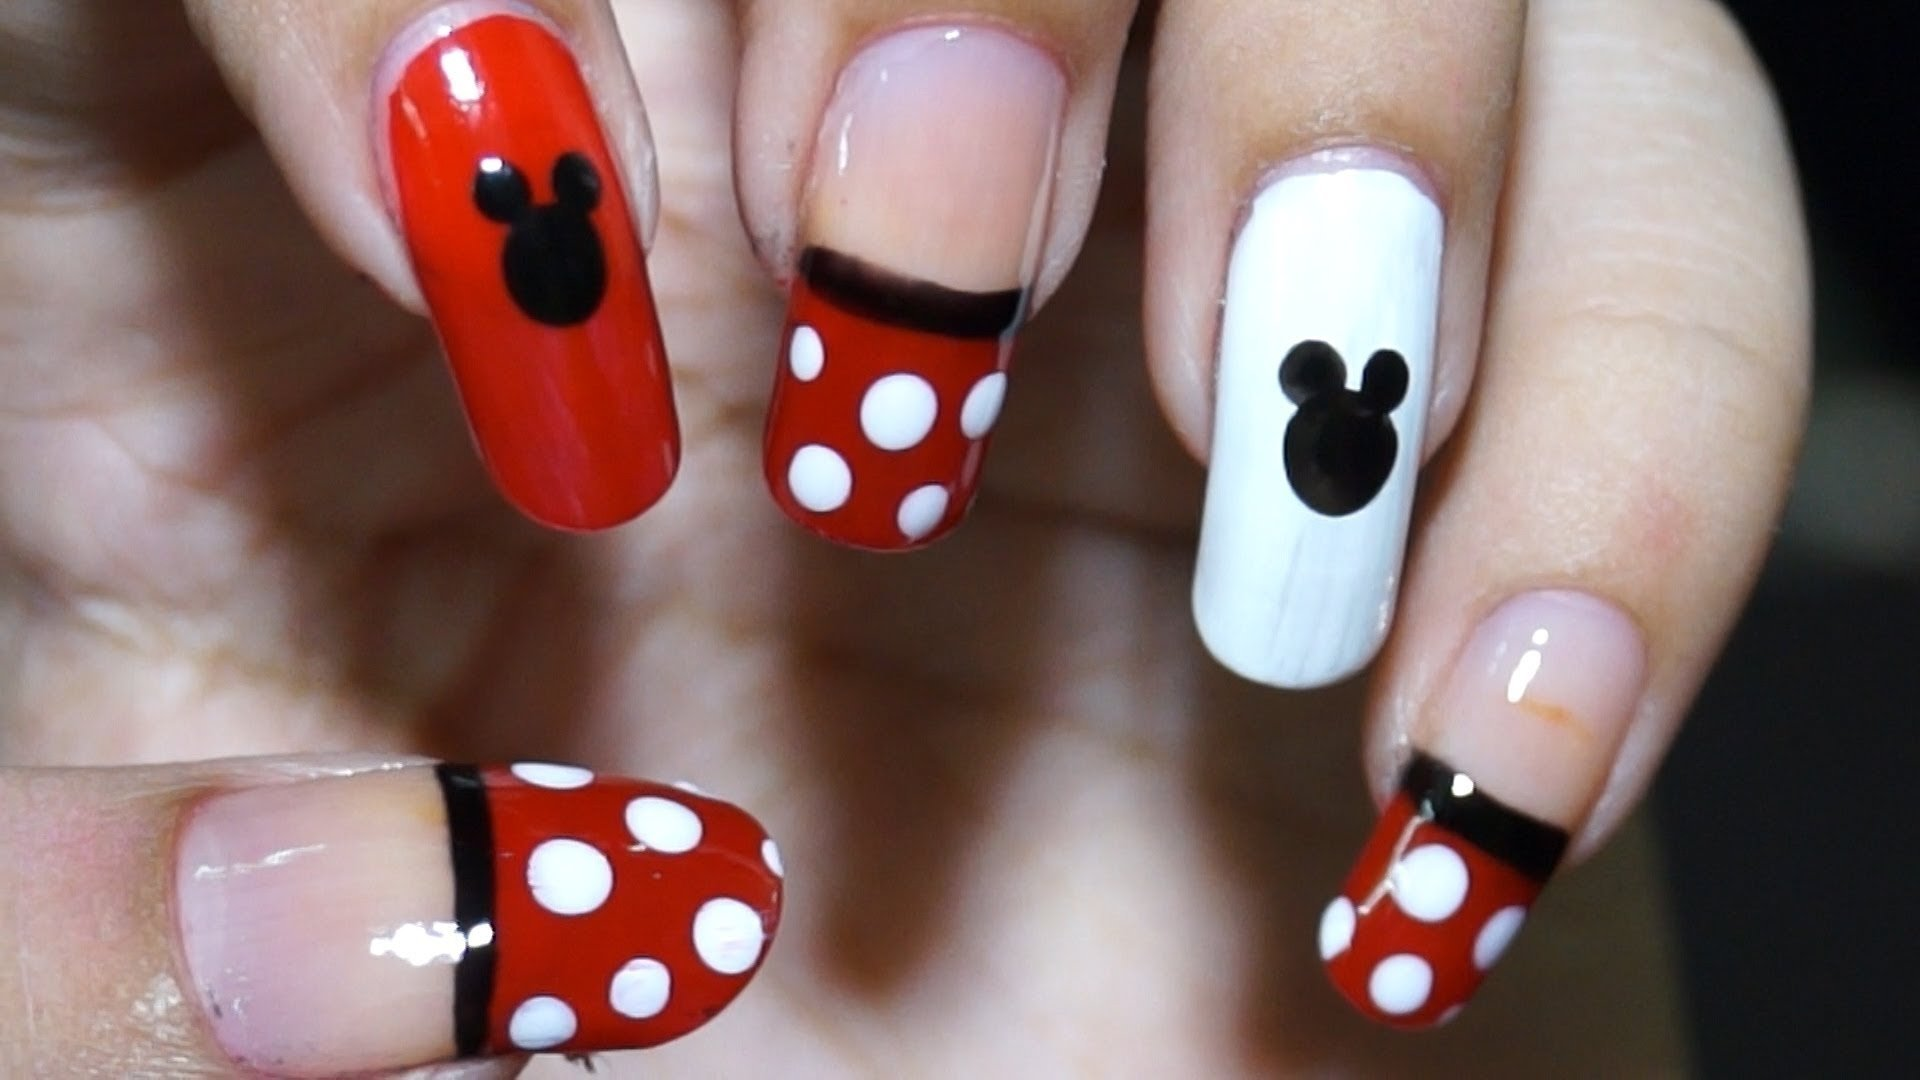 10 Fantastic Nail Art Ideas Easy Step By Step designing nails at home luxury nail art designs easy nail art ideas 2021